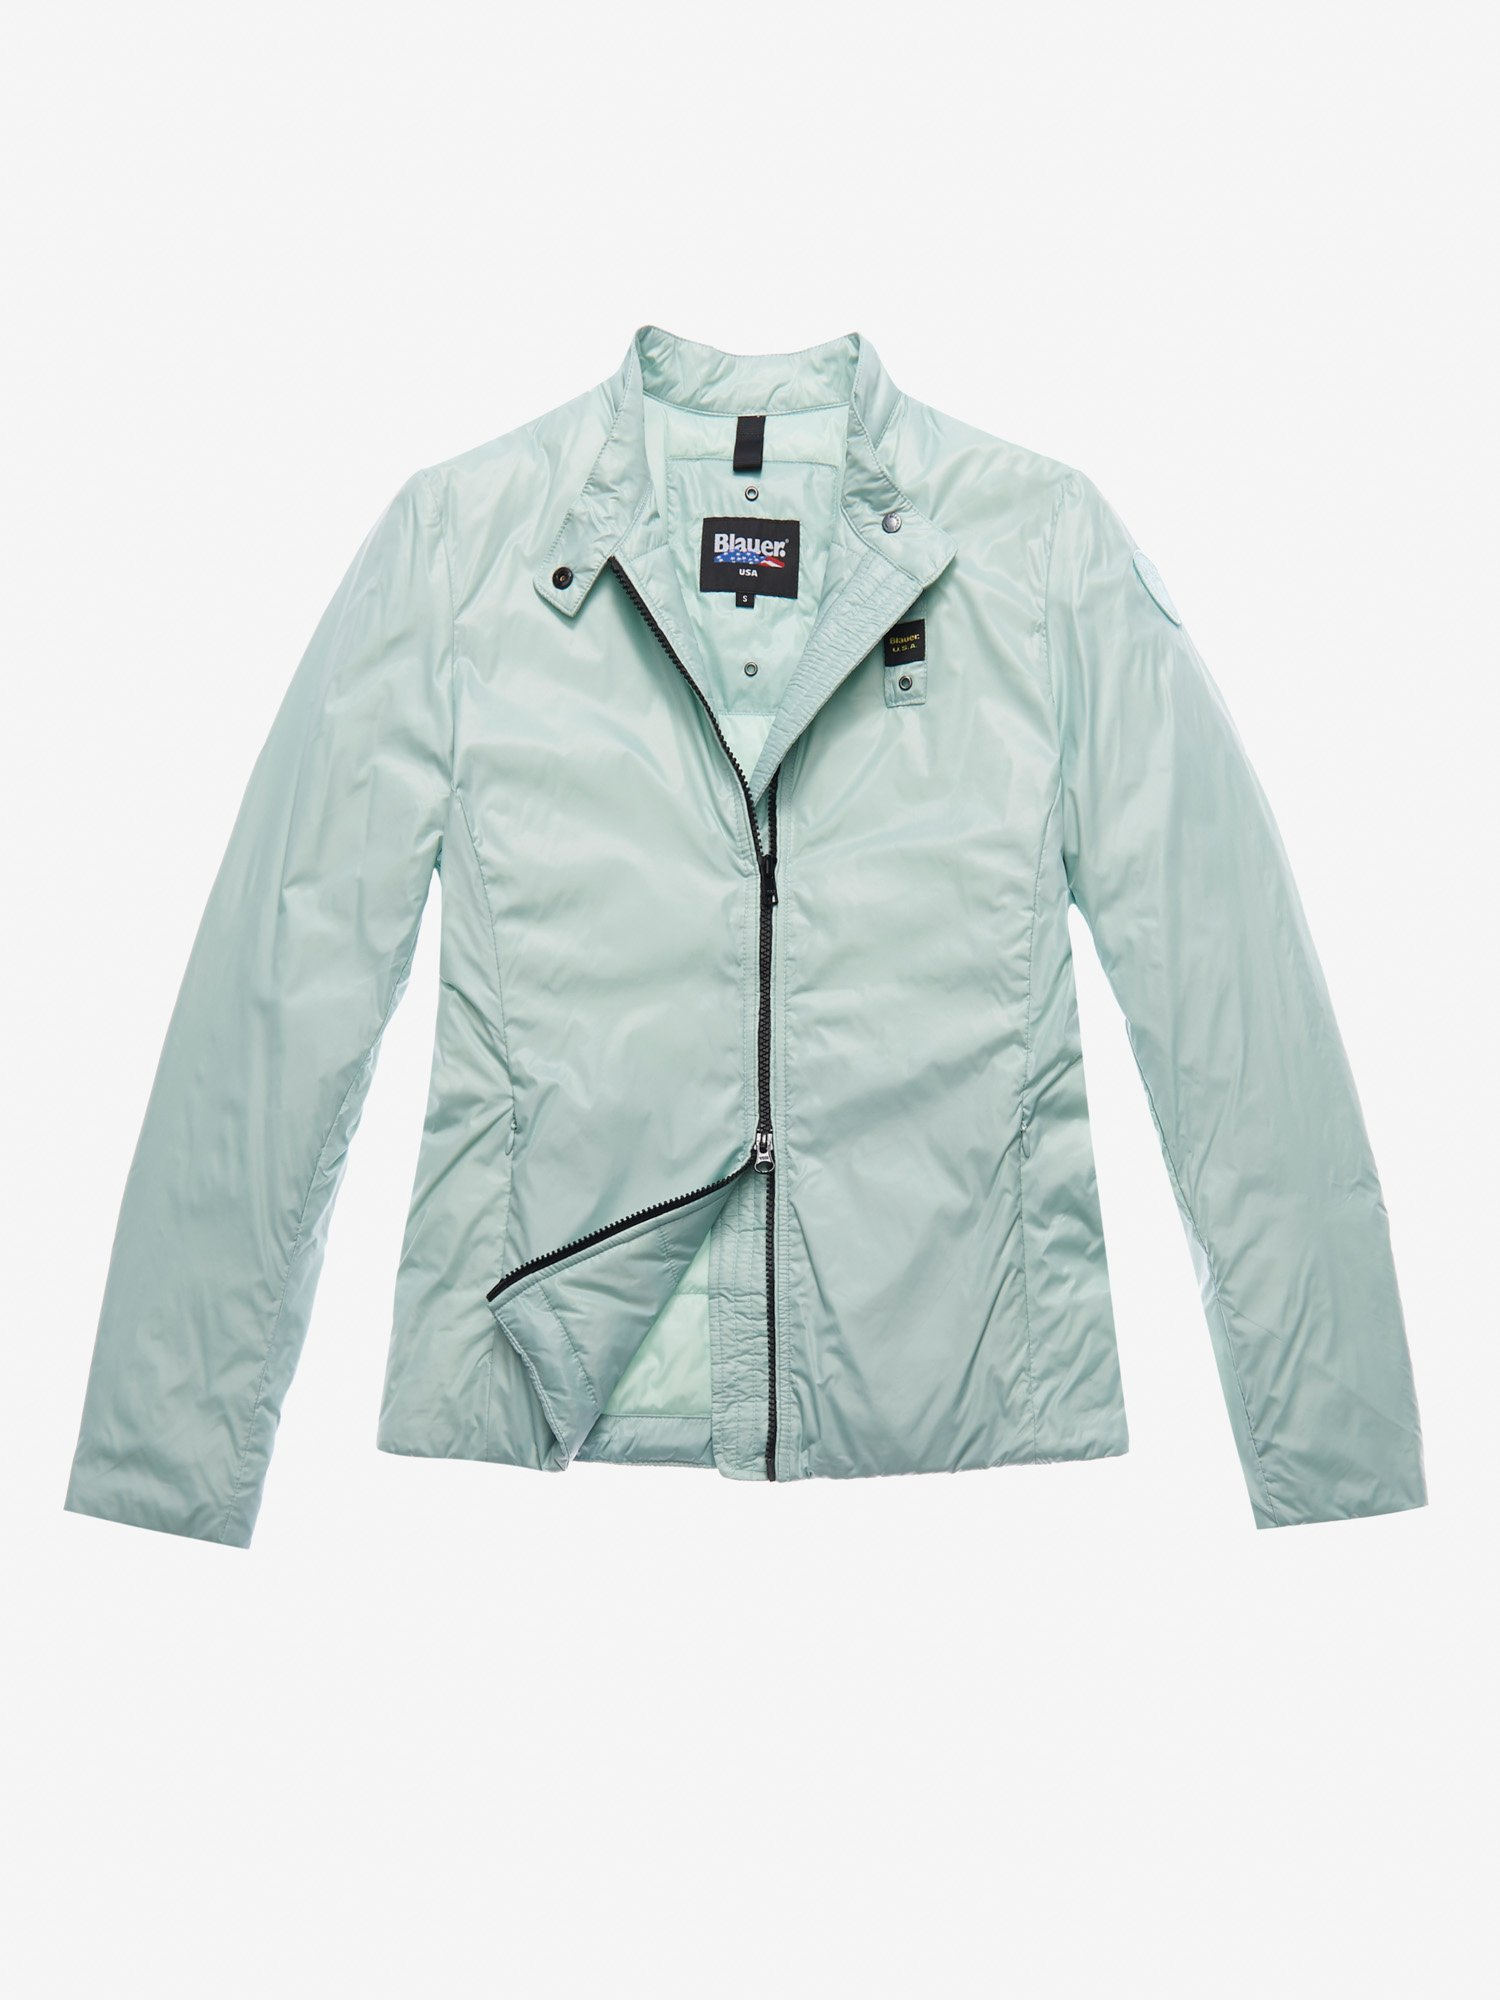 Blauer - DOUDOUNE REMBOURRAGE ECO EVANS - Light Blue - Blauer